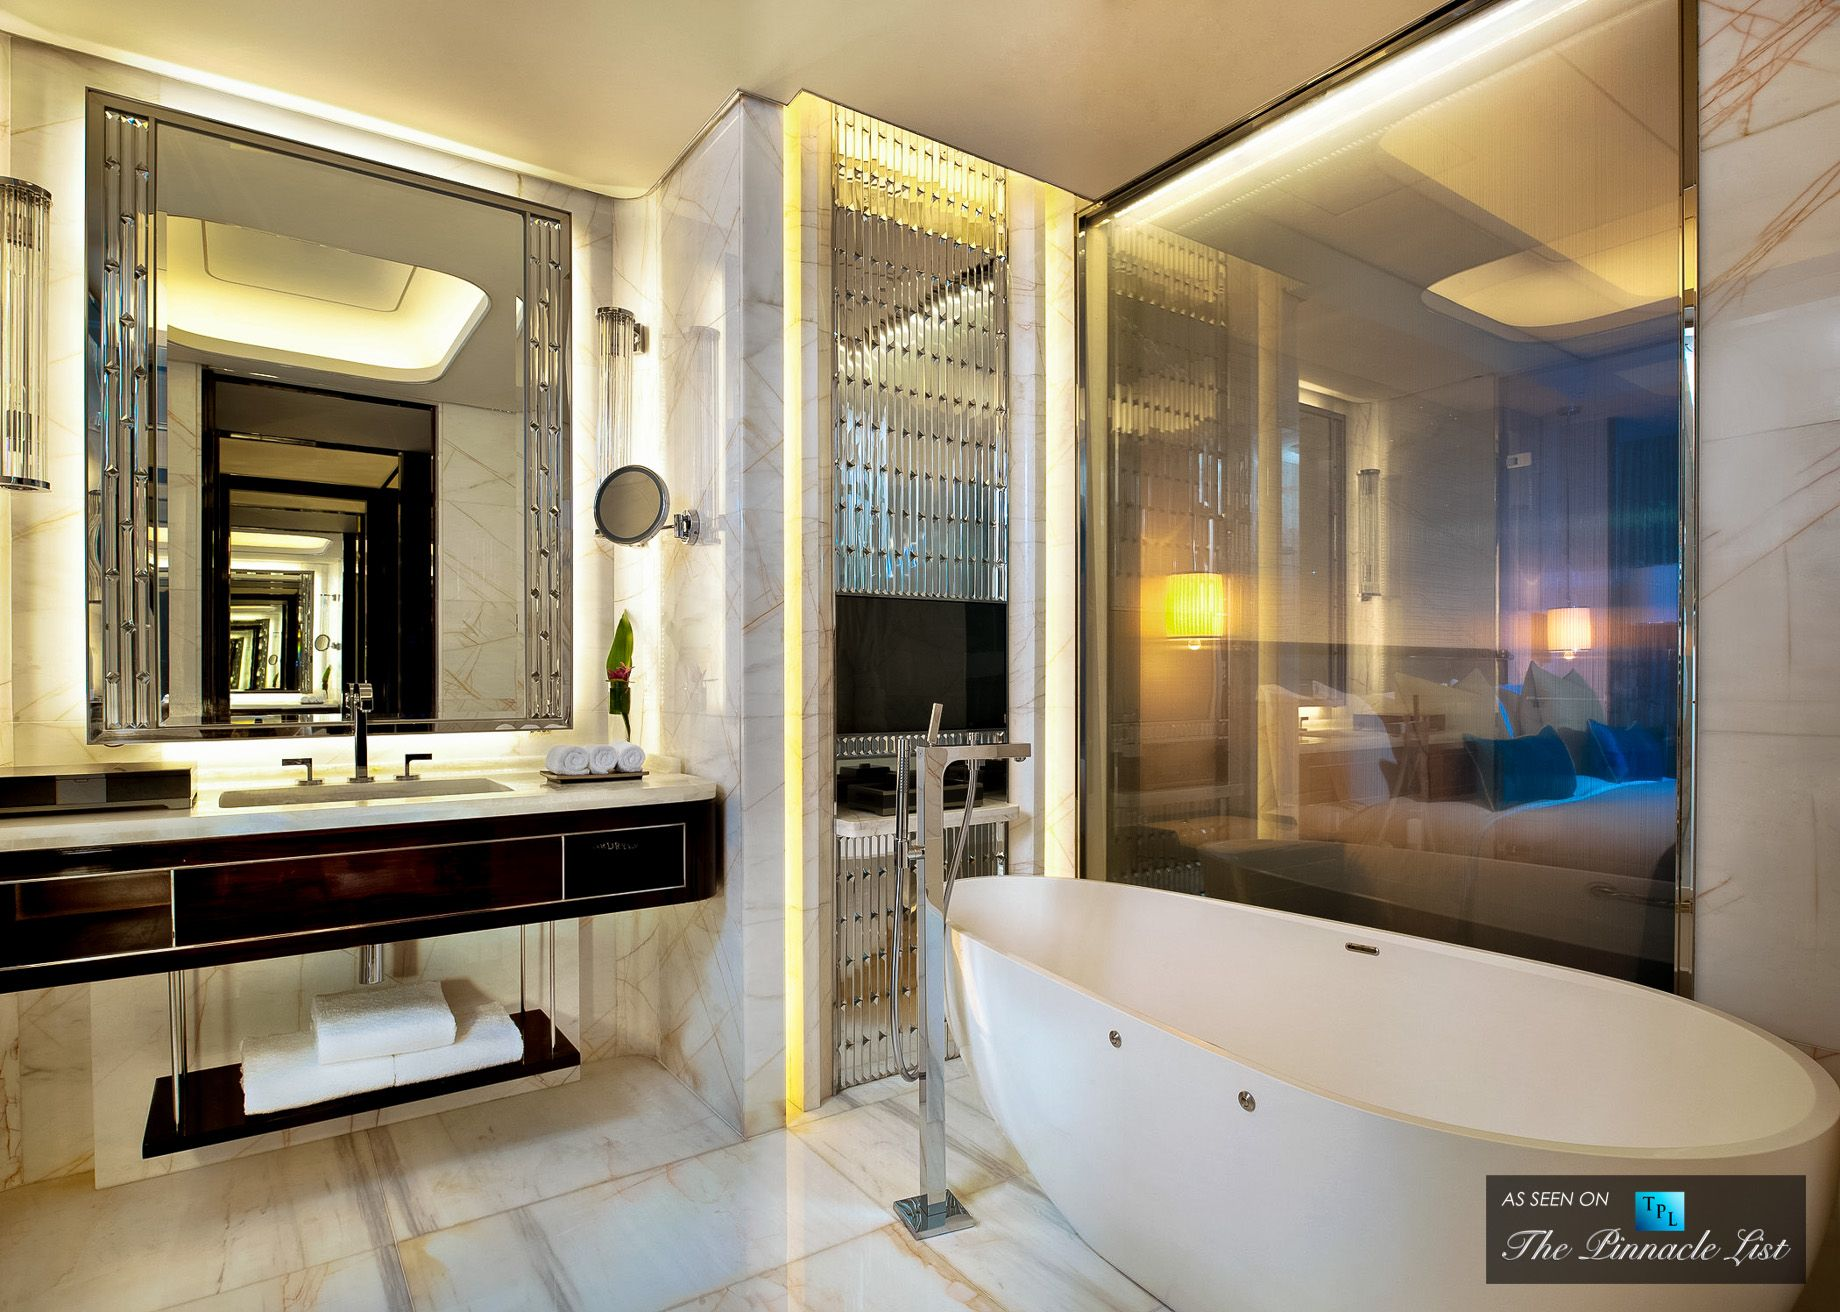 St regis luxury hotel shenzhen china deluxe bathroom for Bathroom room design